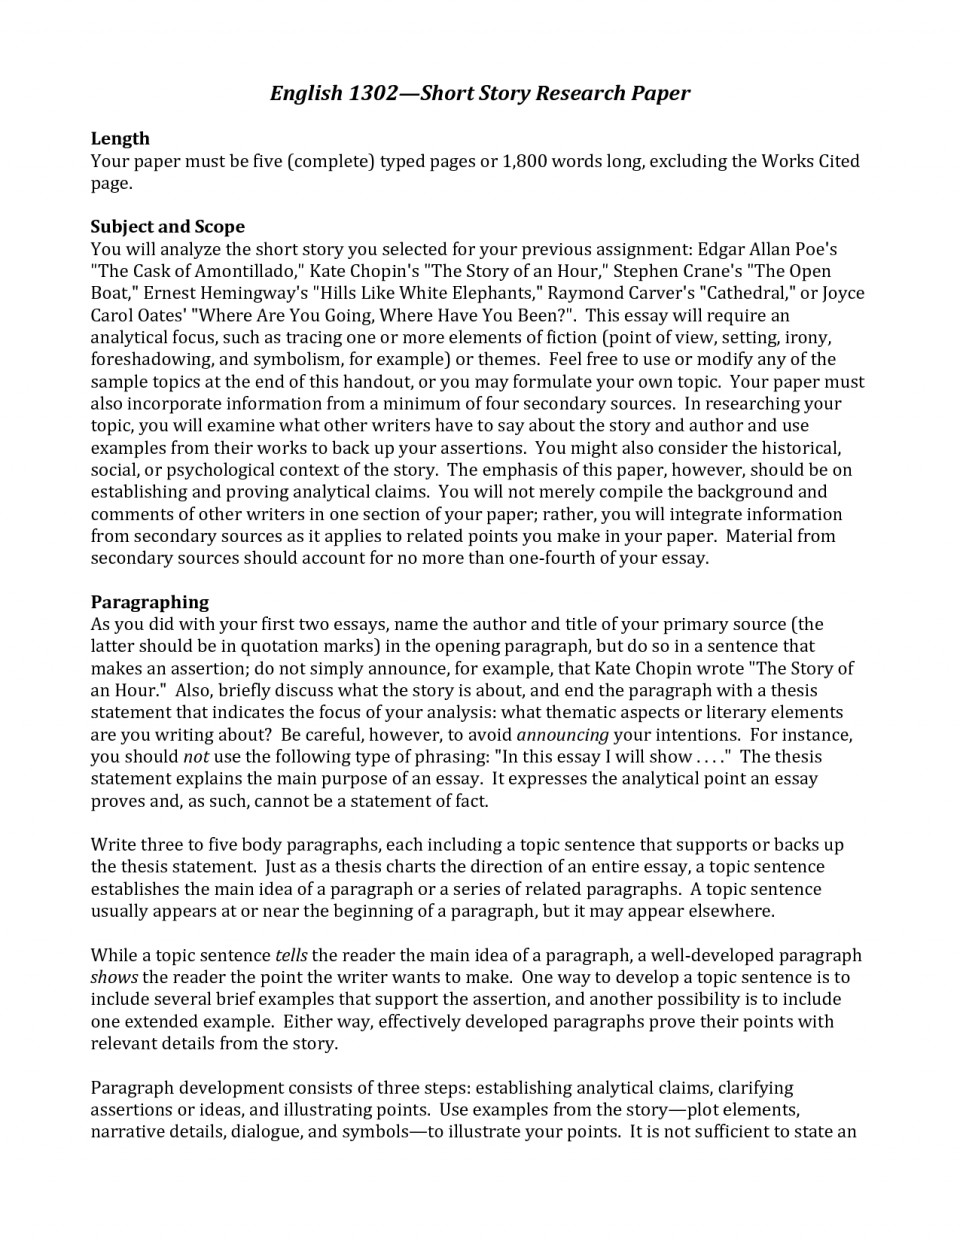 002 Ideas For Research Fascinating Paper Papers In Computer Science Middle School 960